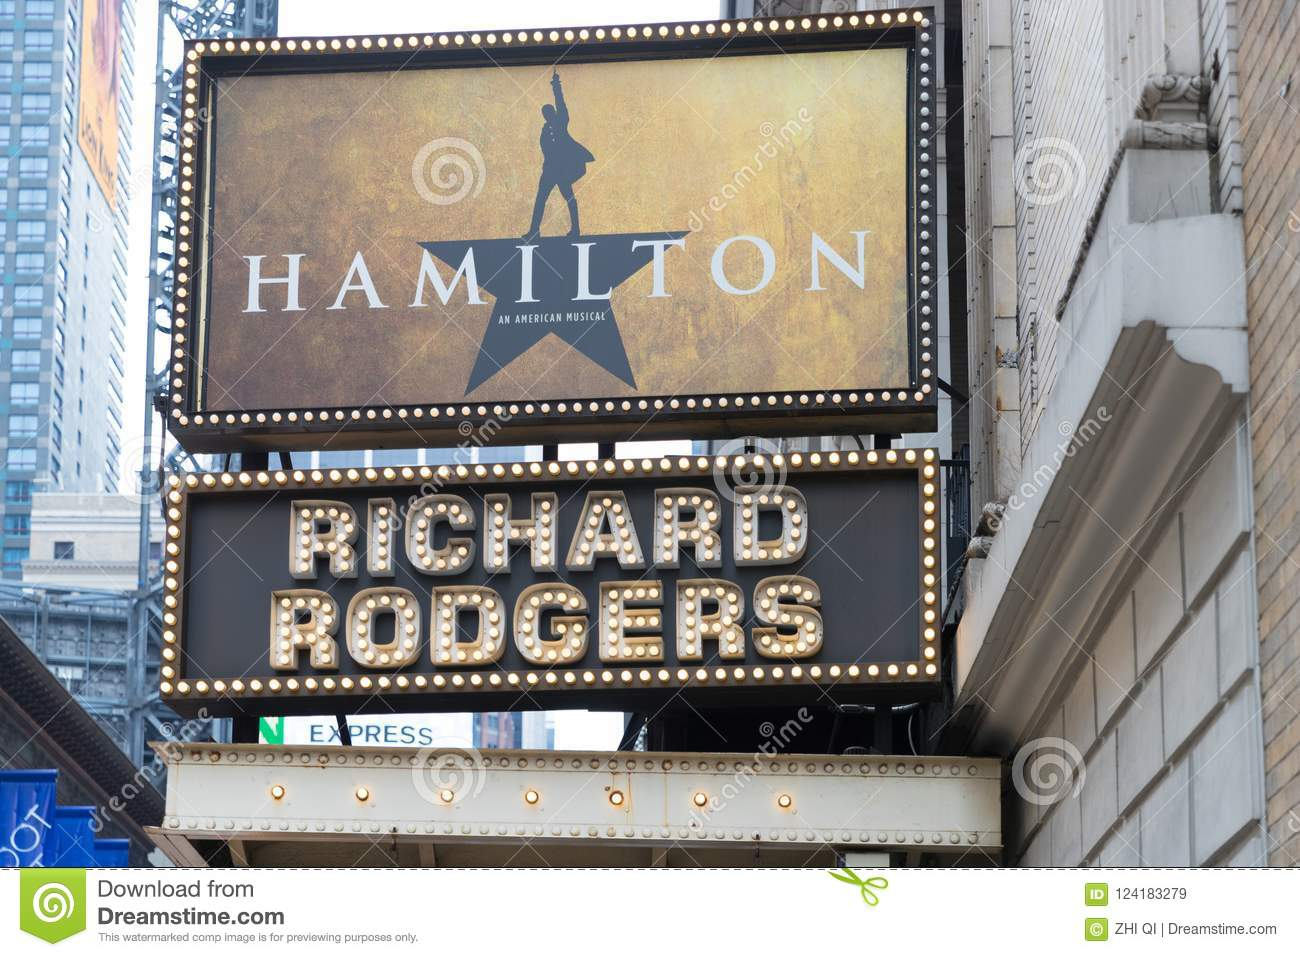 The marquee of Hamilton, An American Musical